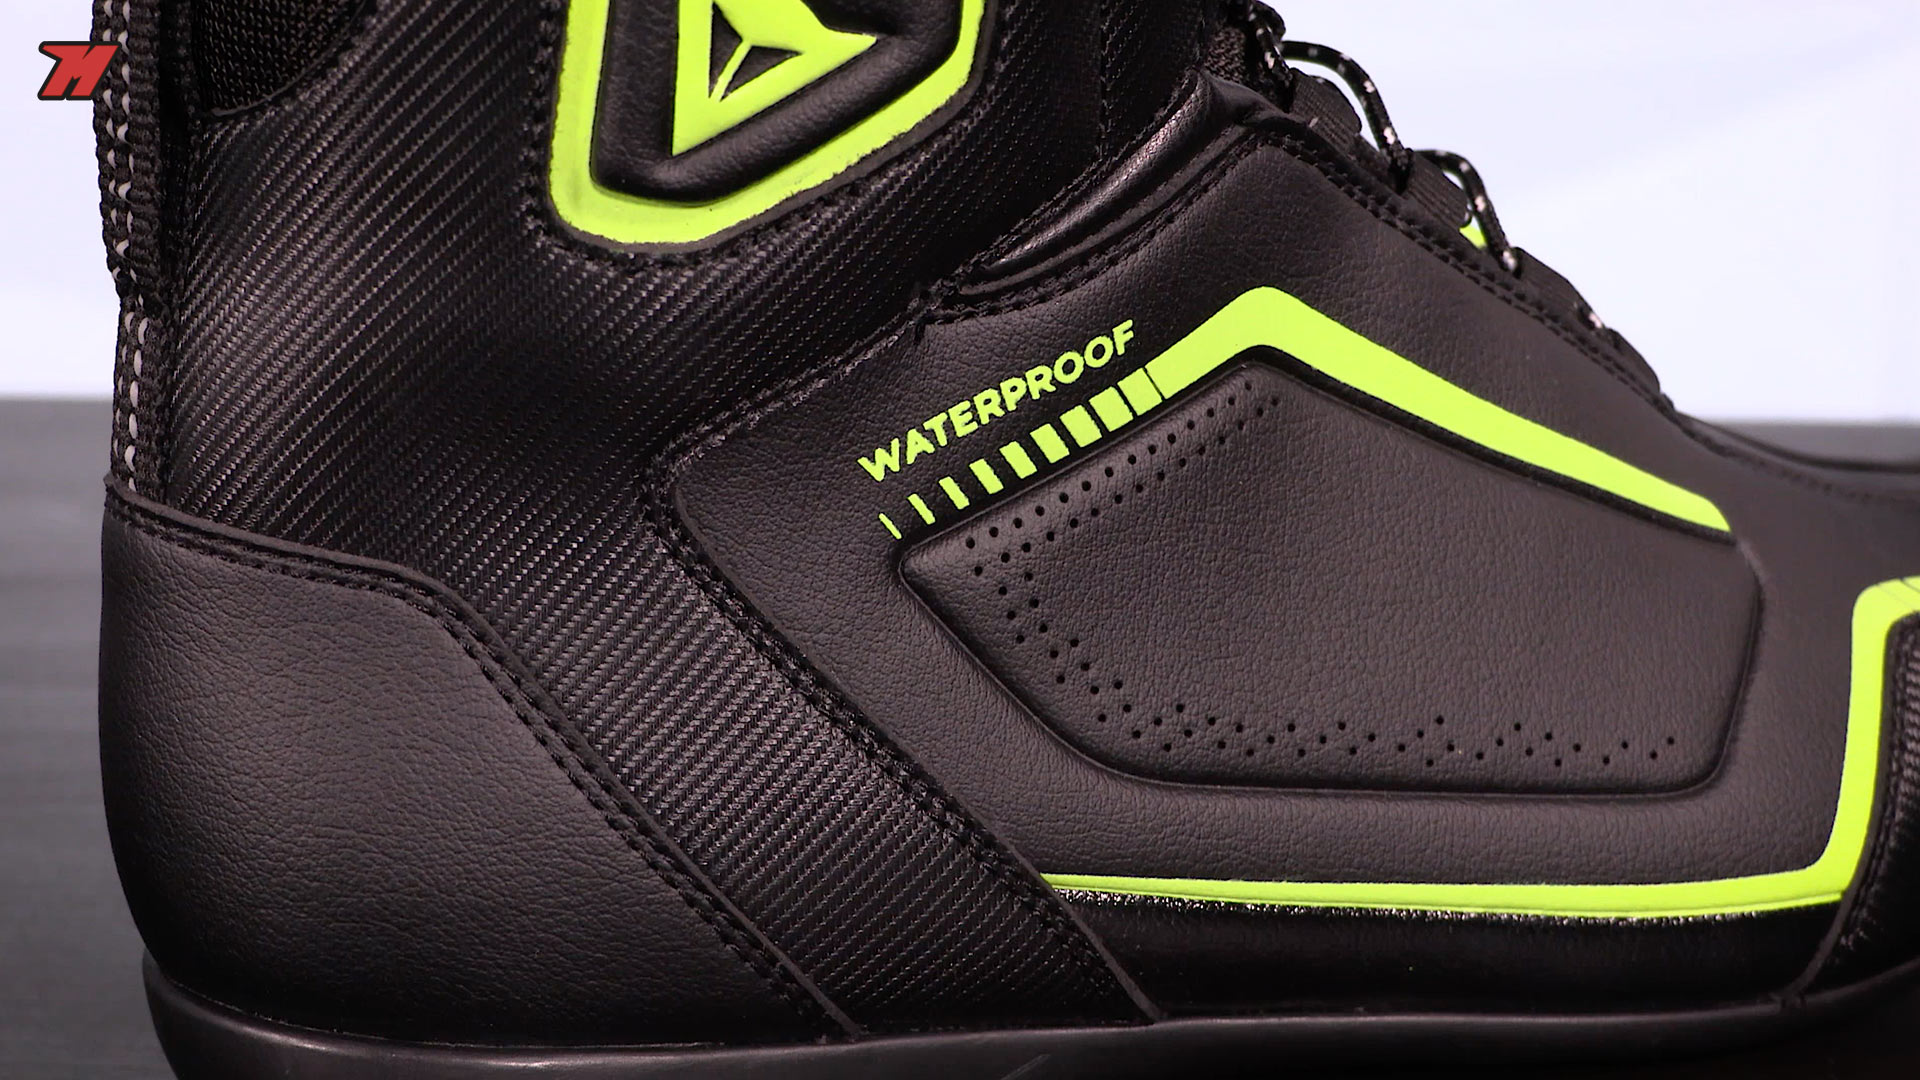 Review Dainese Raptors The Ideal Motorcycle Shoe For Your Day To D Island Shoes Slip On Driving Comfort Leather Black 12812